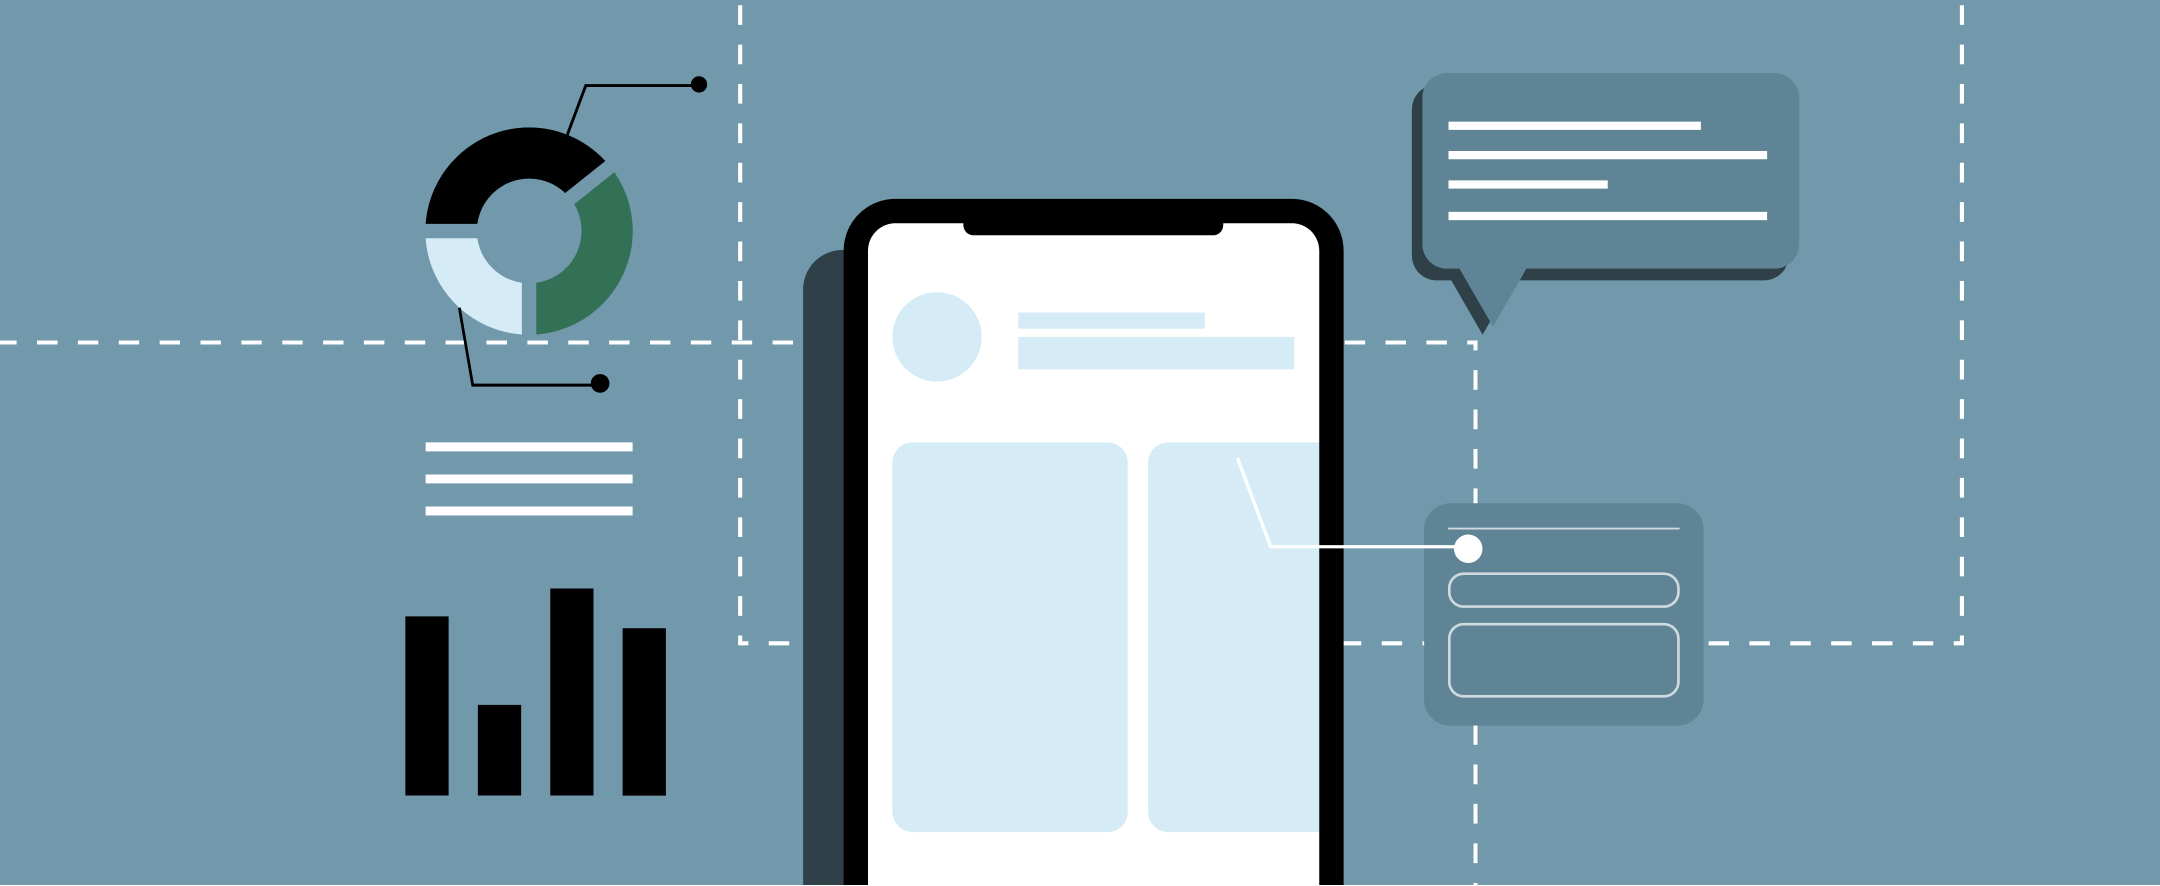 How To Launch A Mobile App In 4 Steps1